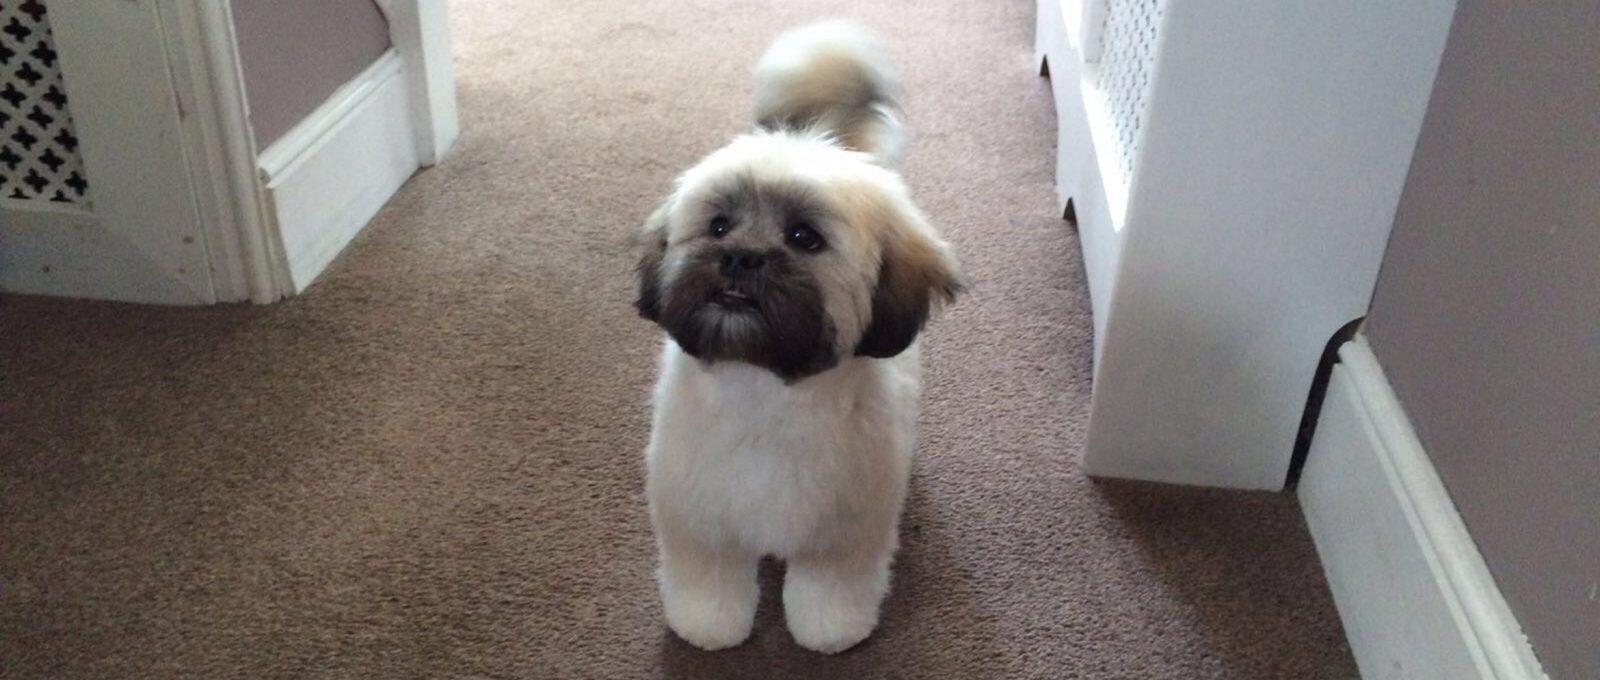 Lhasa Apso puppy back from the groomers